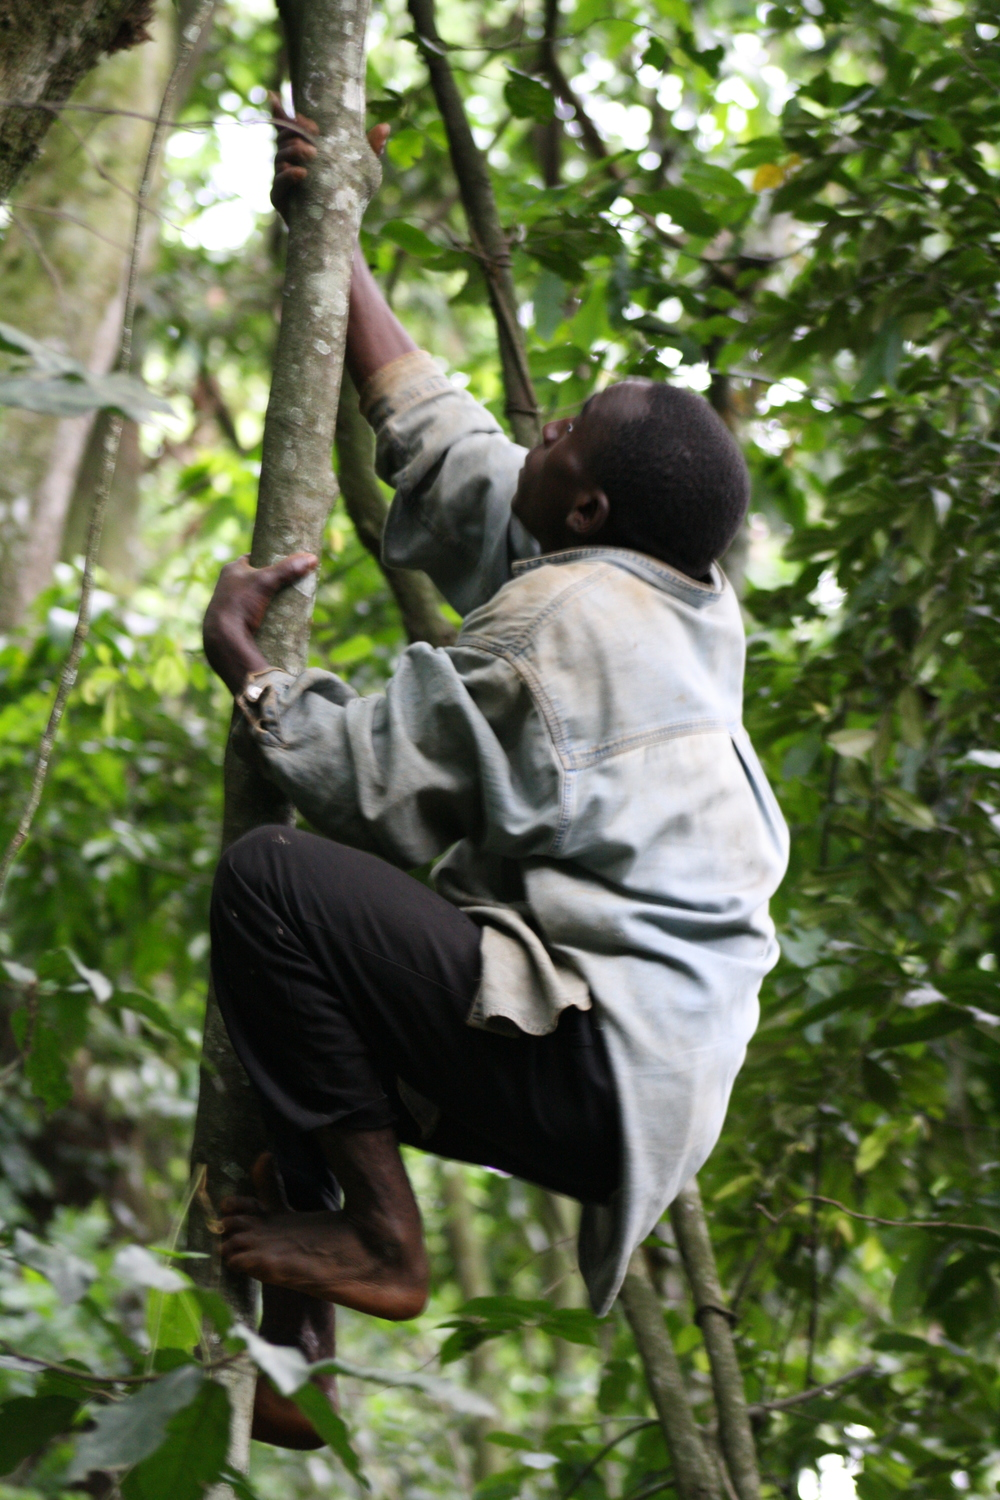 Batwa man climbing tree in Bwindi Impenetrable Forest National Park, Uganda